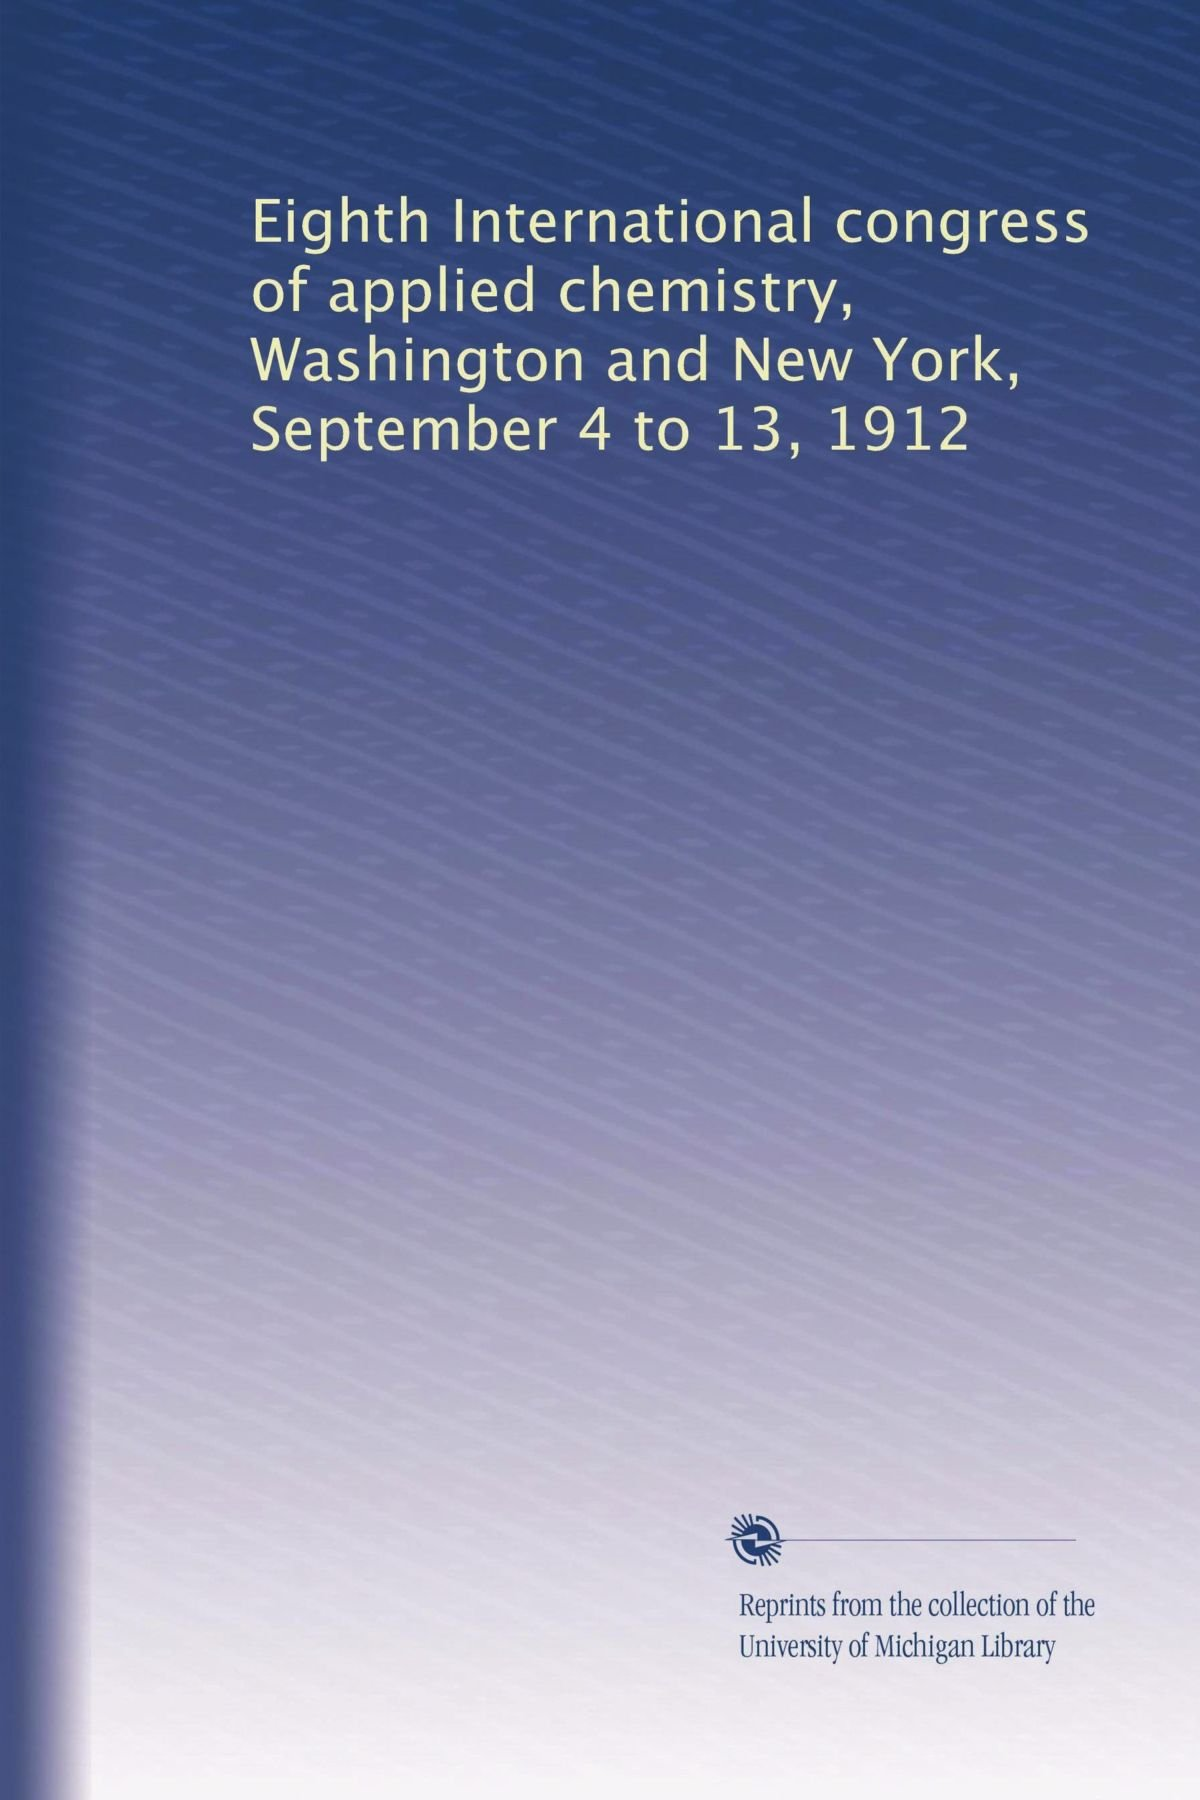 Eighth International congress of applied chemistry, Washington and New York, September 4 to 13, 1912 pdf